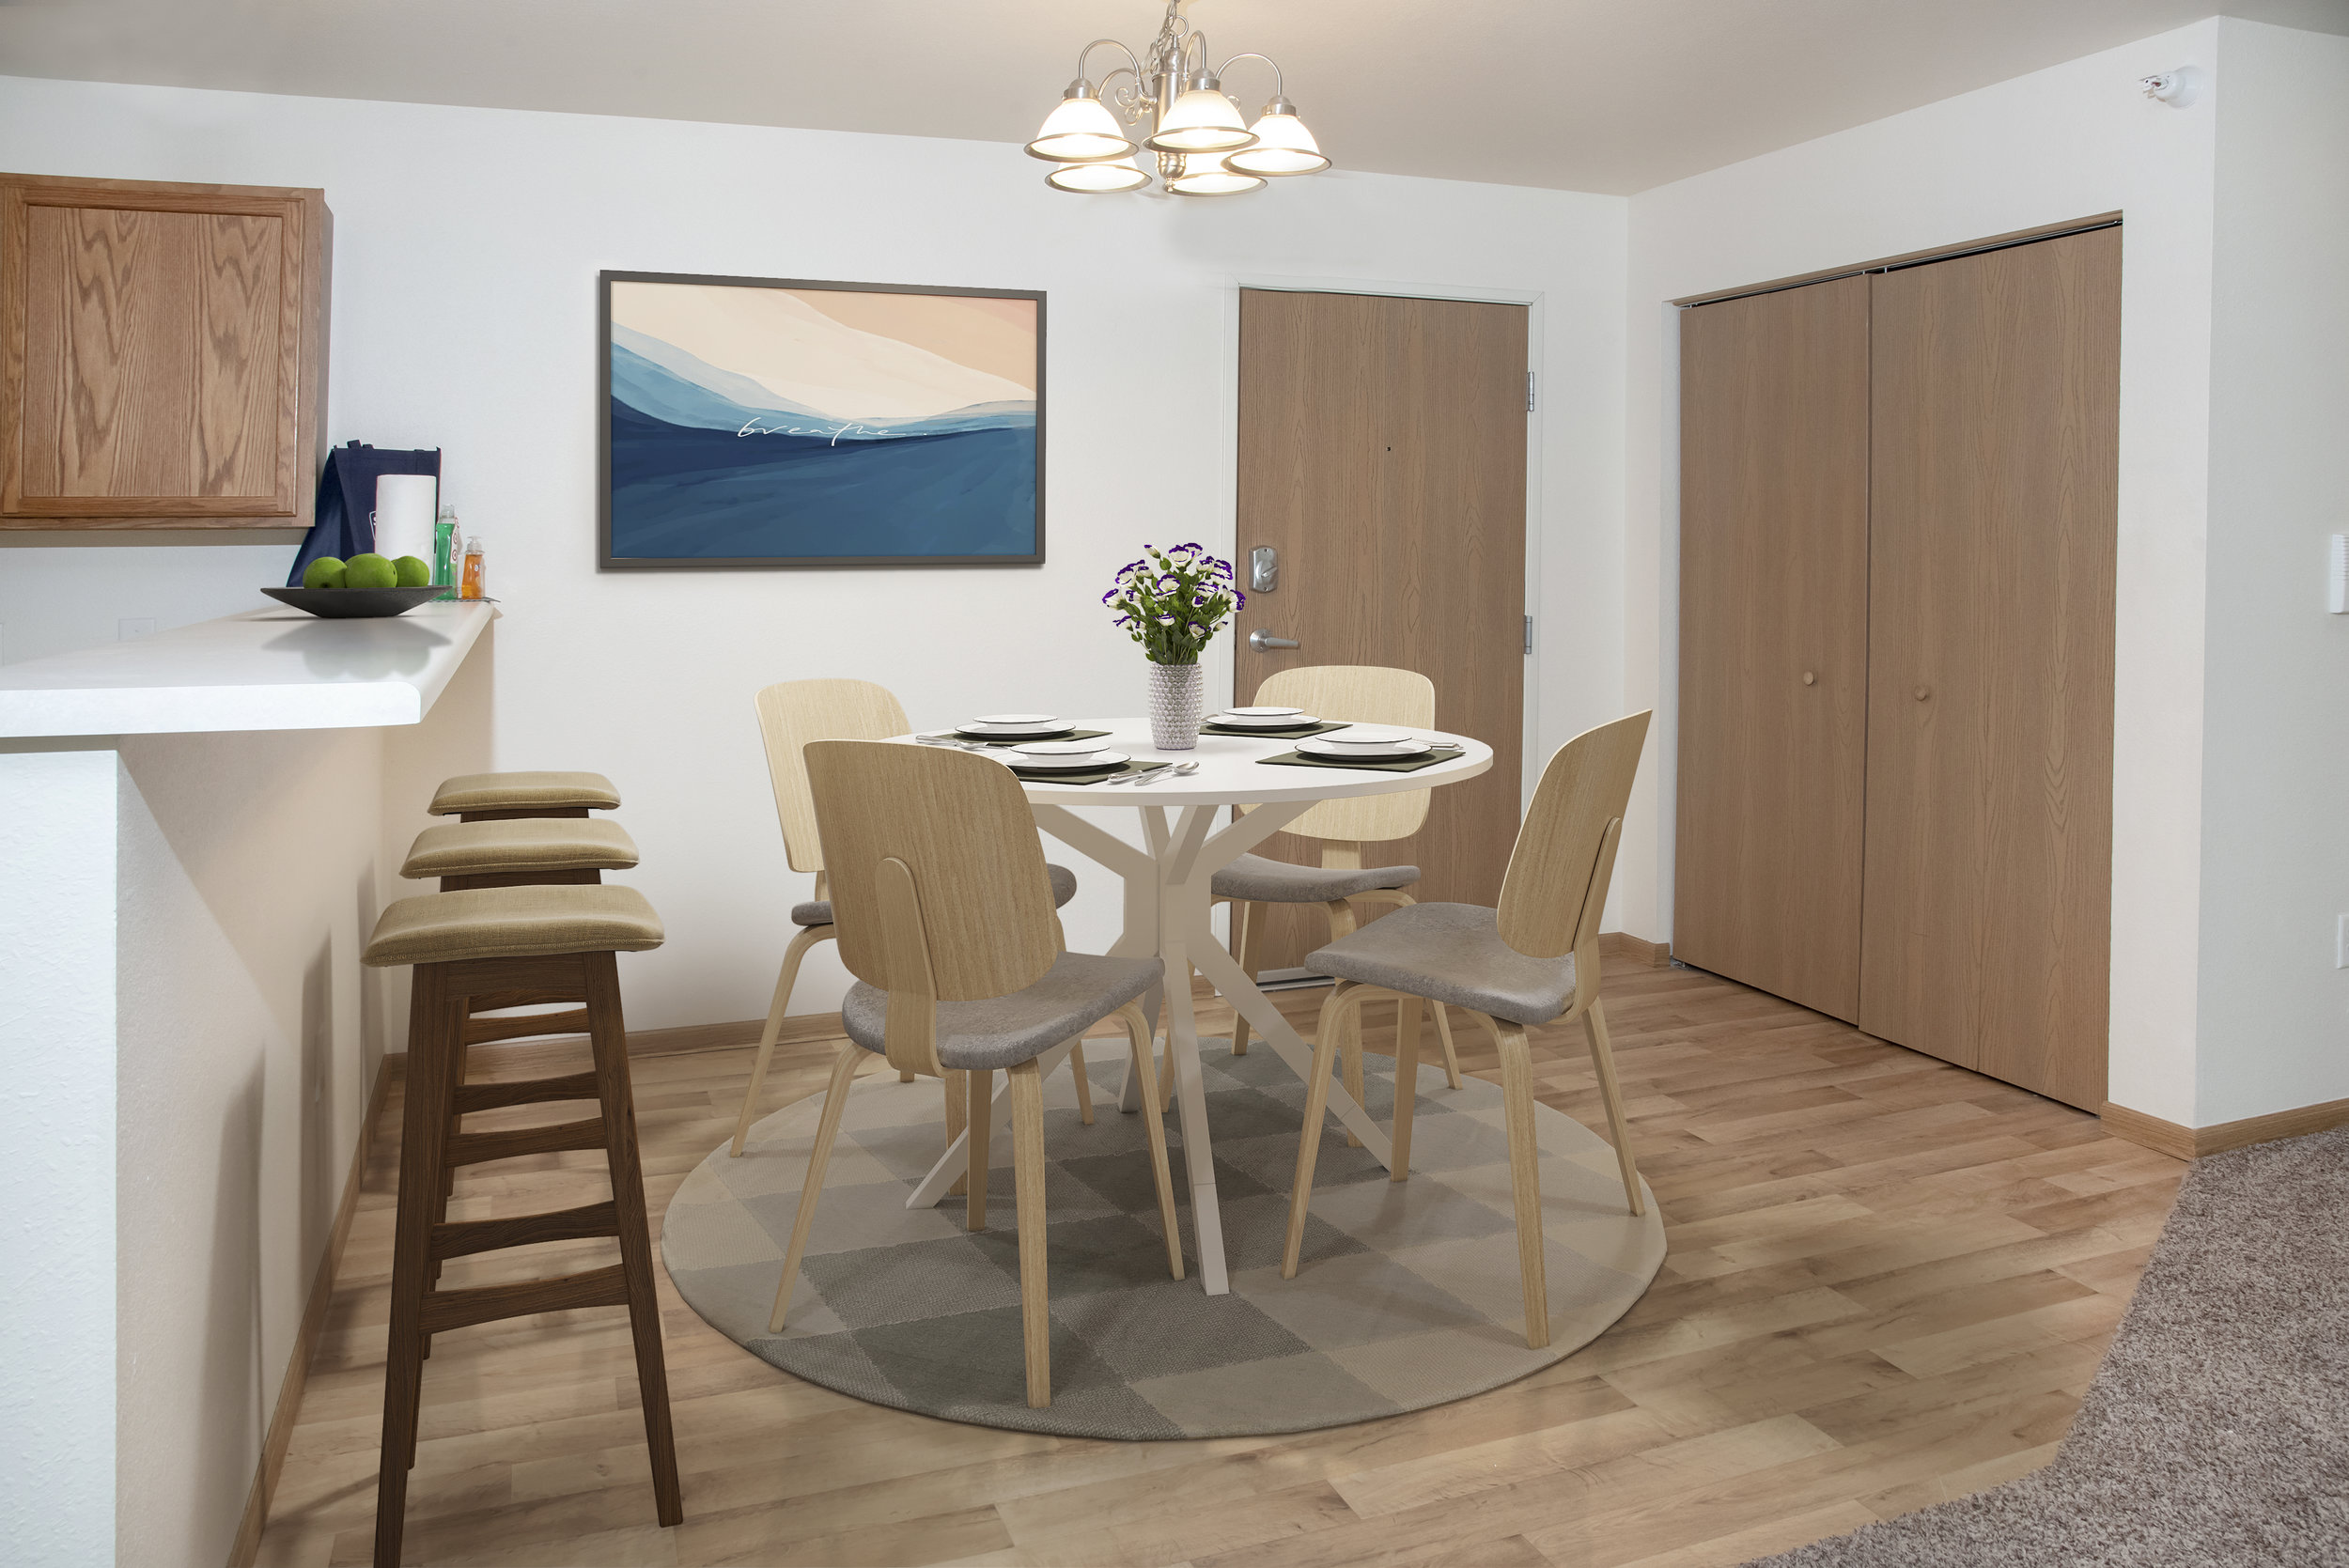 04-Entry featuring Dining Room Area and Coat Closets.jpg